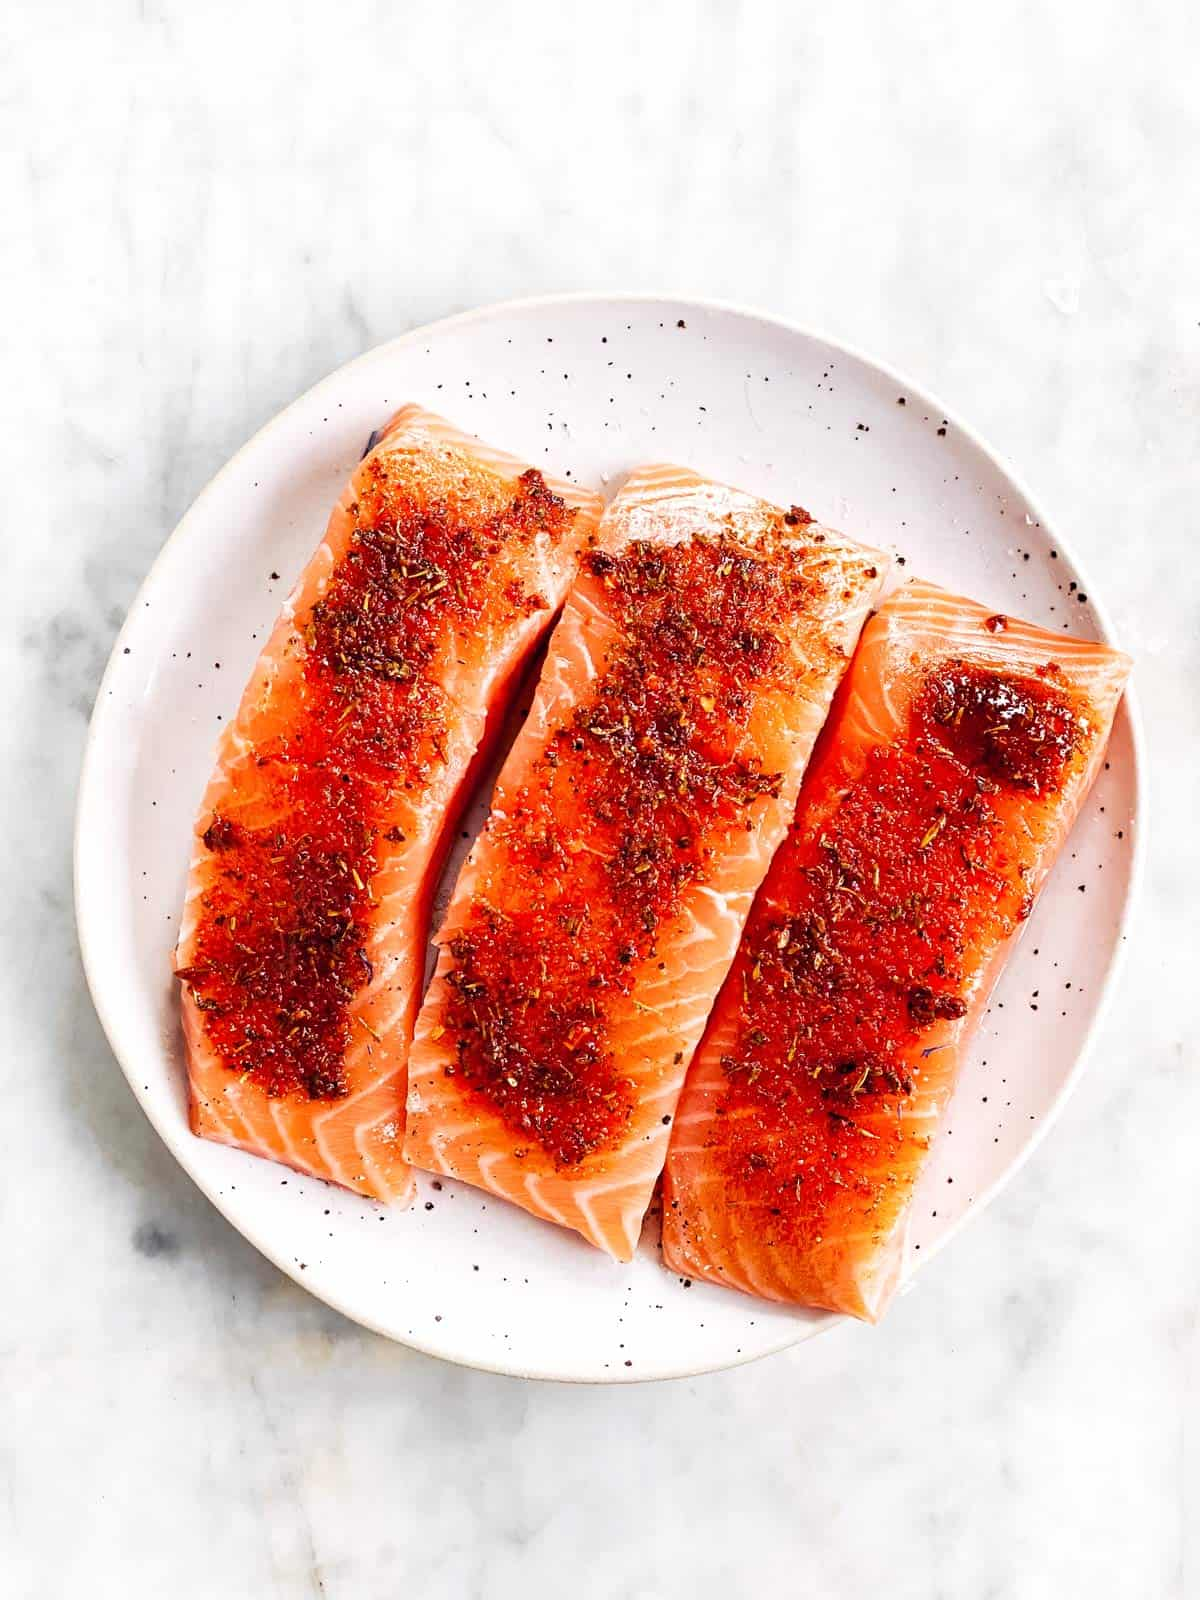 there seasoned raw salmon fillets on white plate